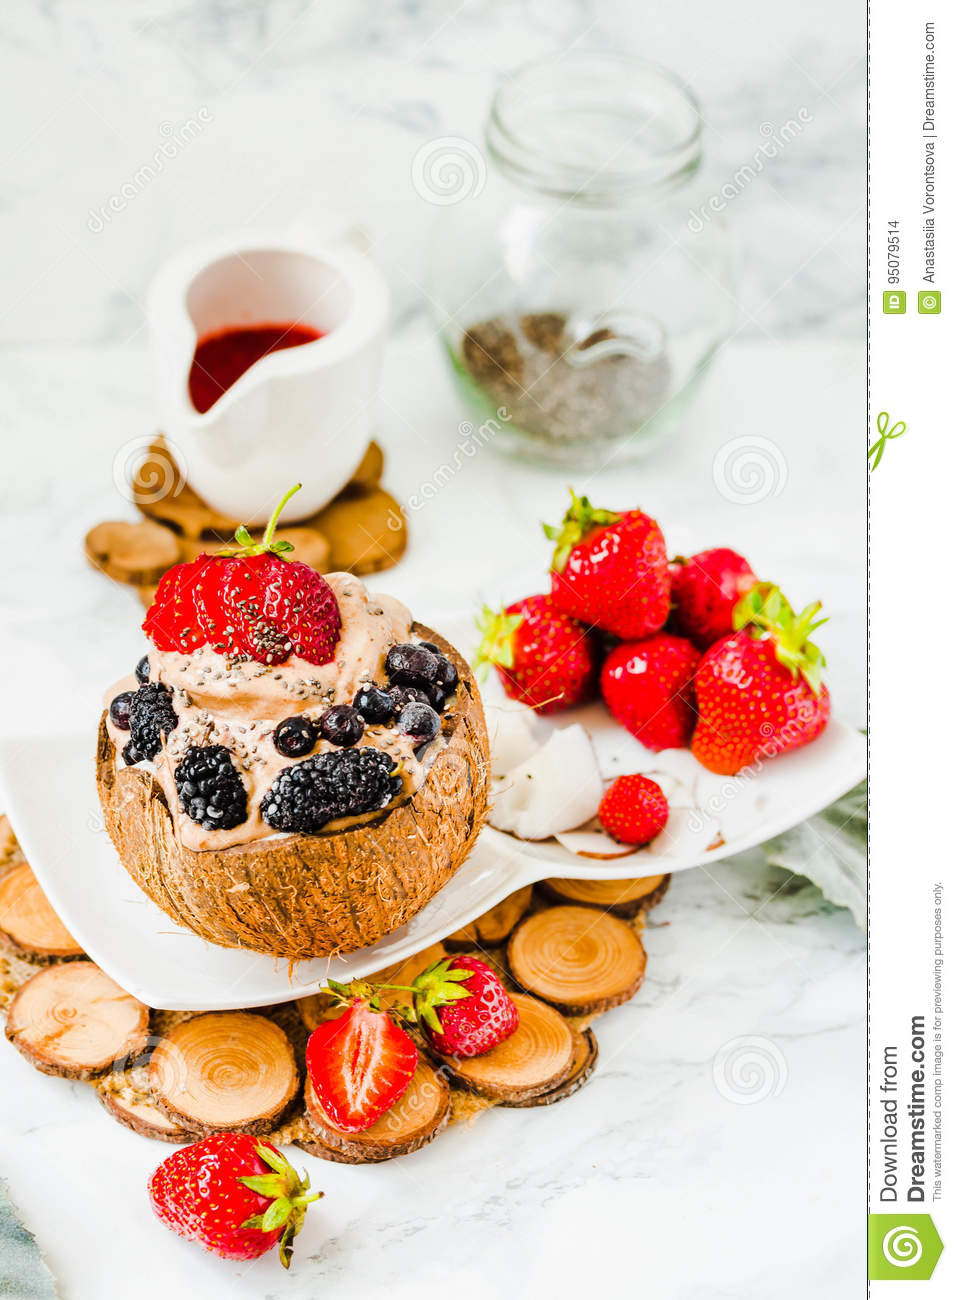 Chocolate ice cream with berries on coconut cup.Healthy vegetari